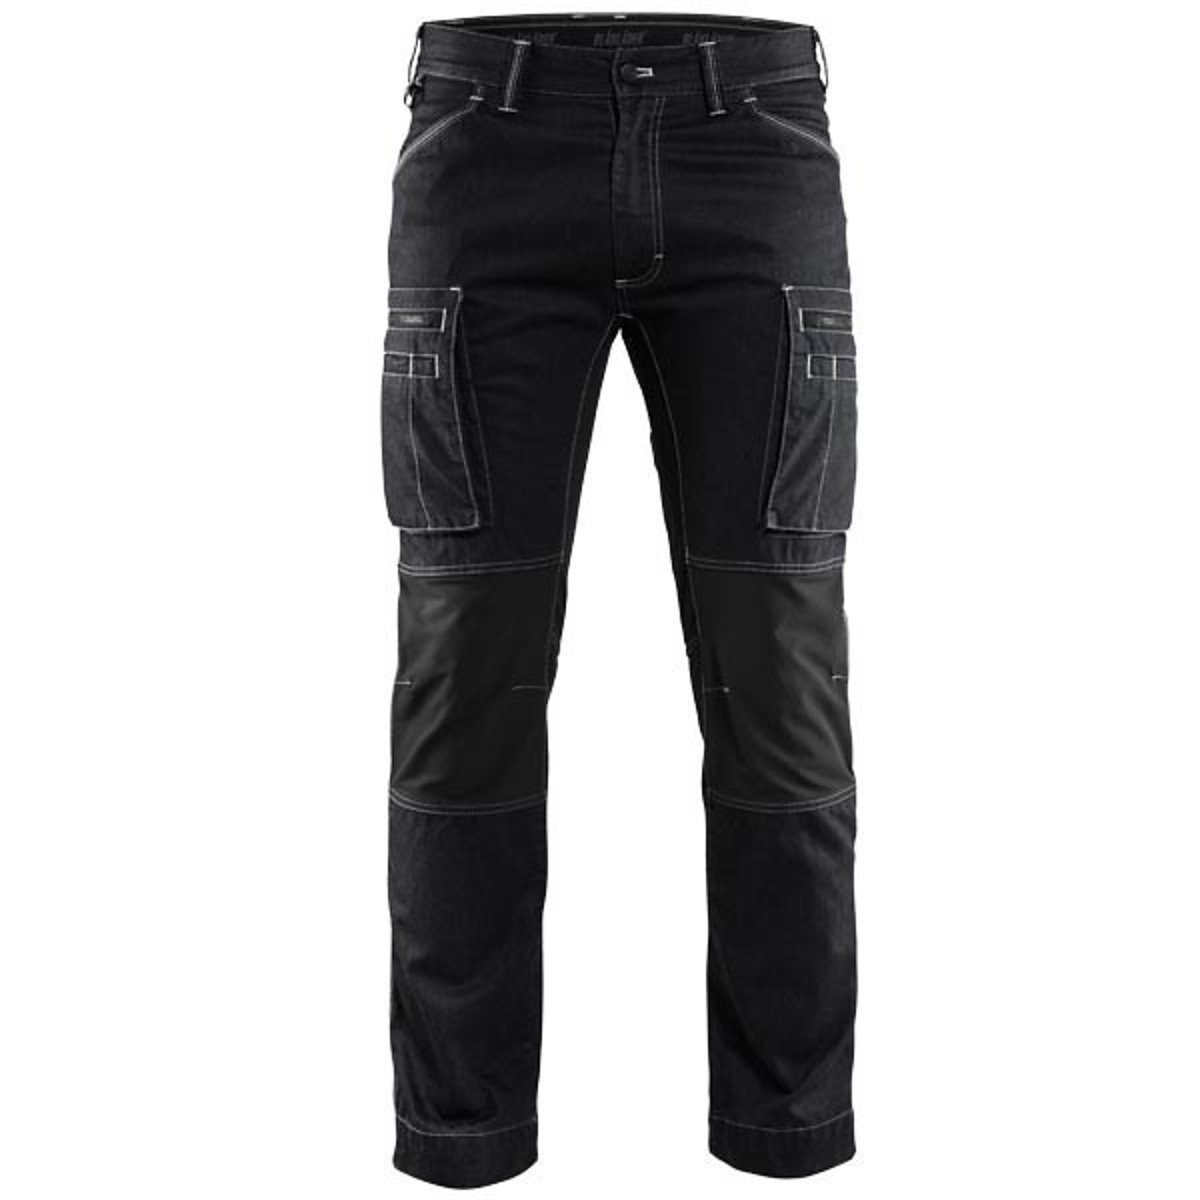 IN Black 145911429900C54 Trousers Size 38//32 Metric Size C54